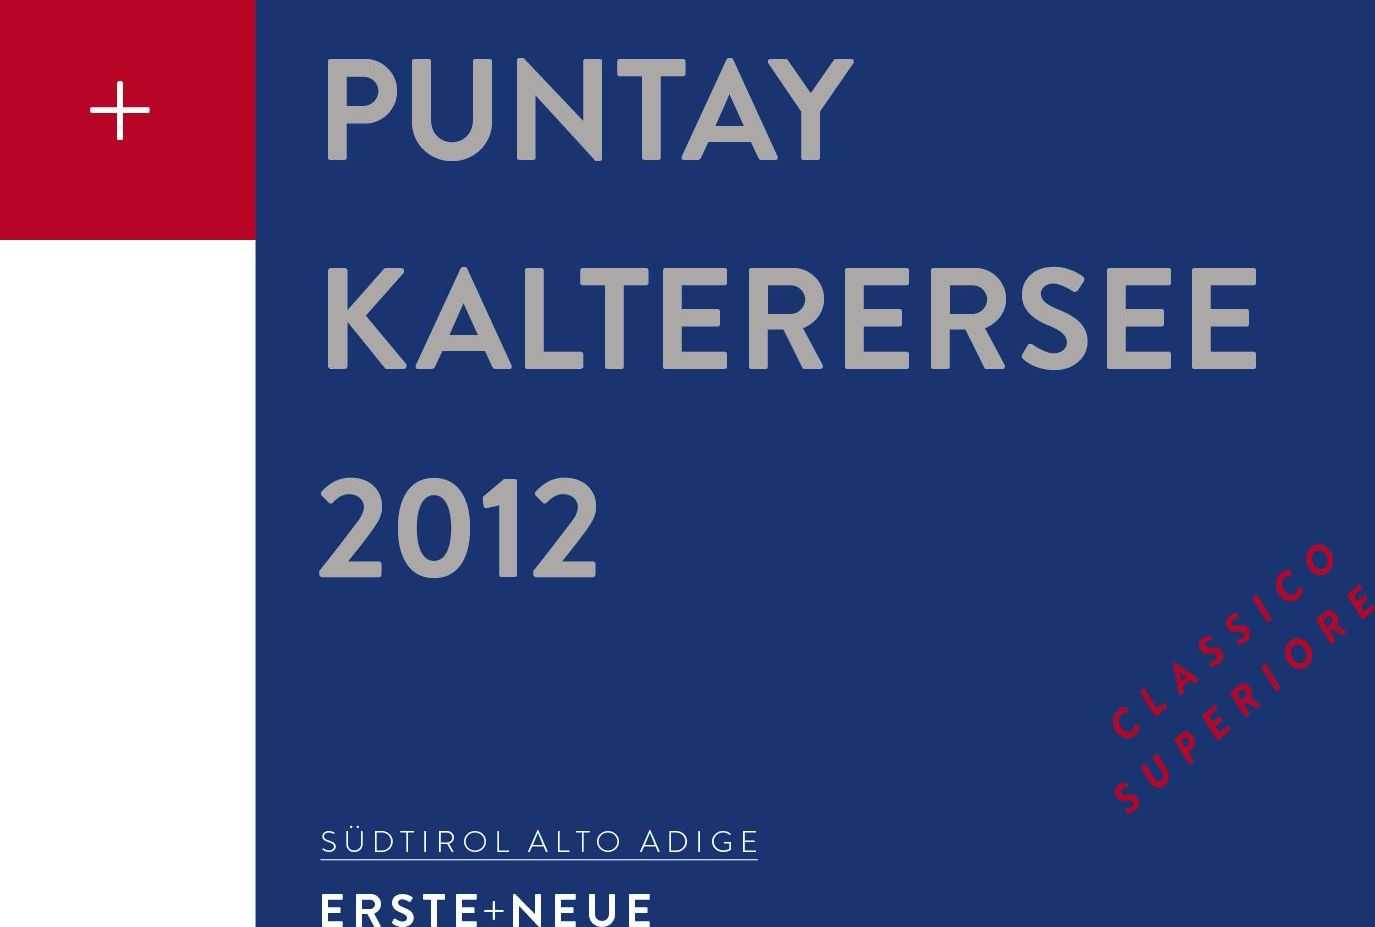 Erste + Neue Kalterersee Puntay Classico Superiore 2012 Front Label